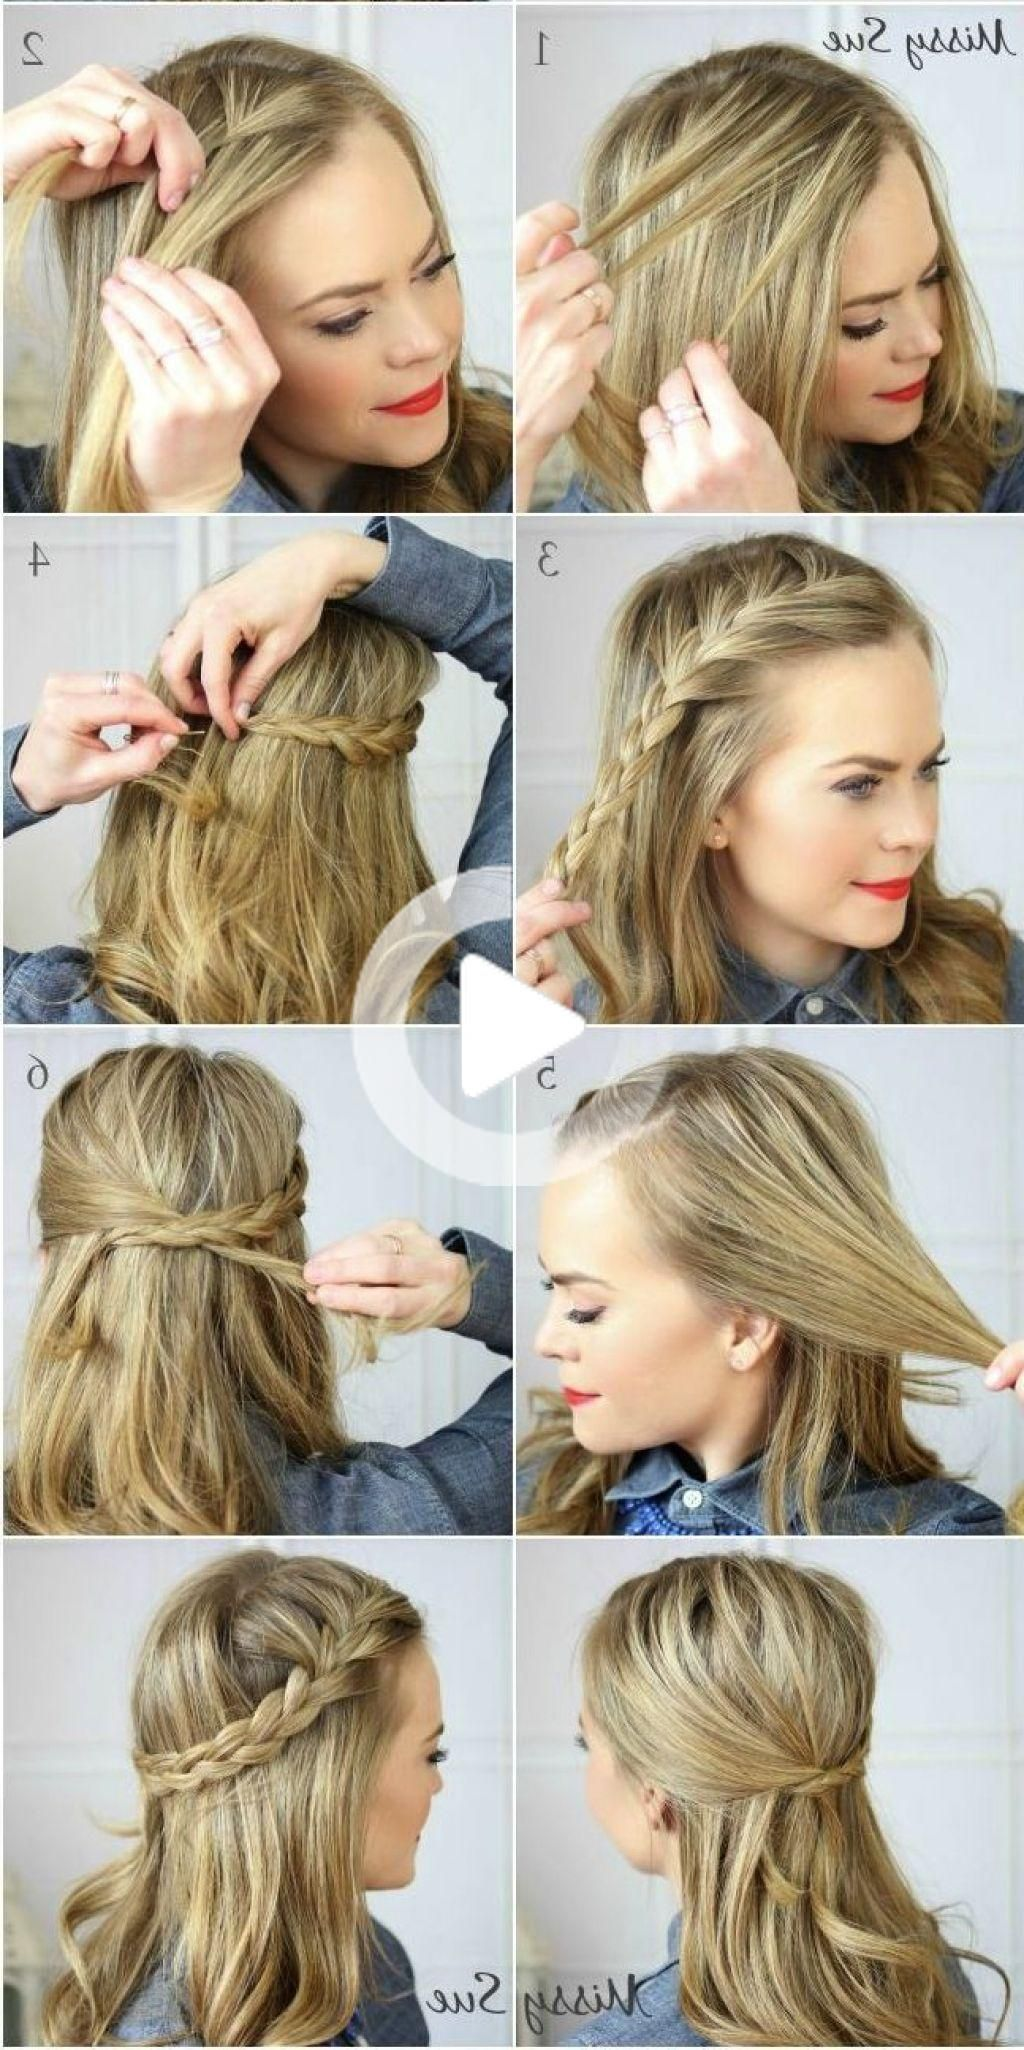 50+ Cute easy hairstyles for thin hair trends